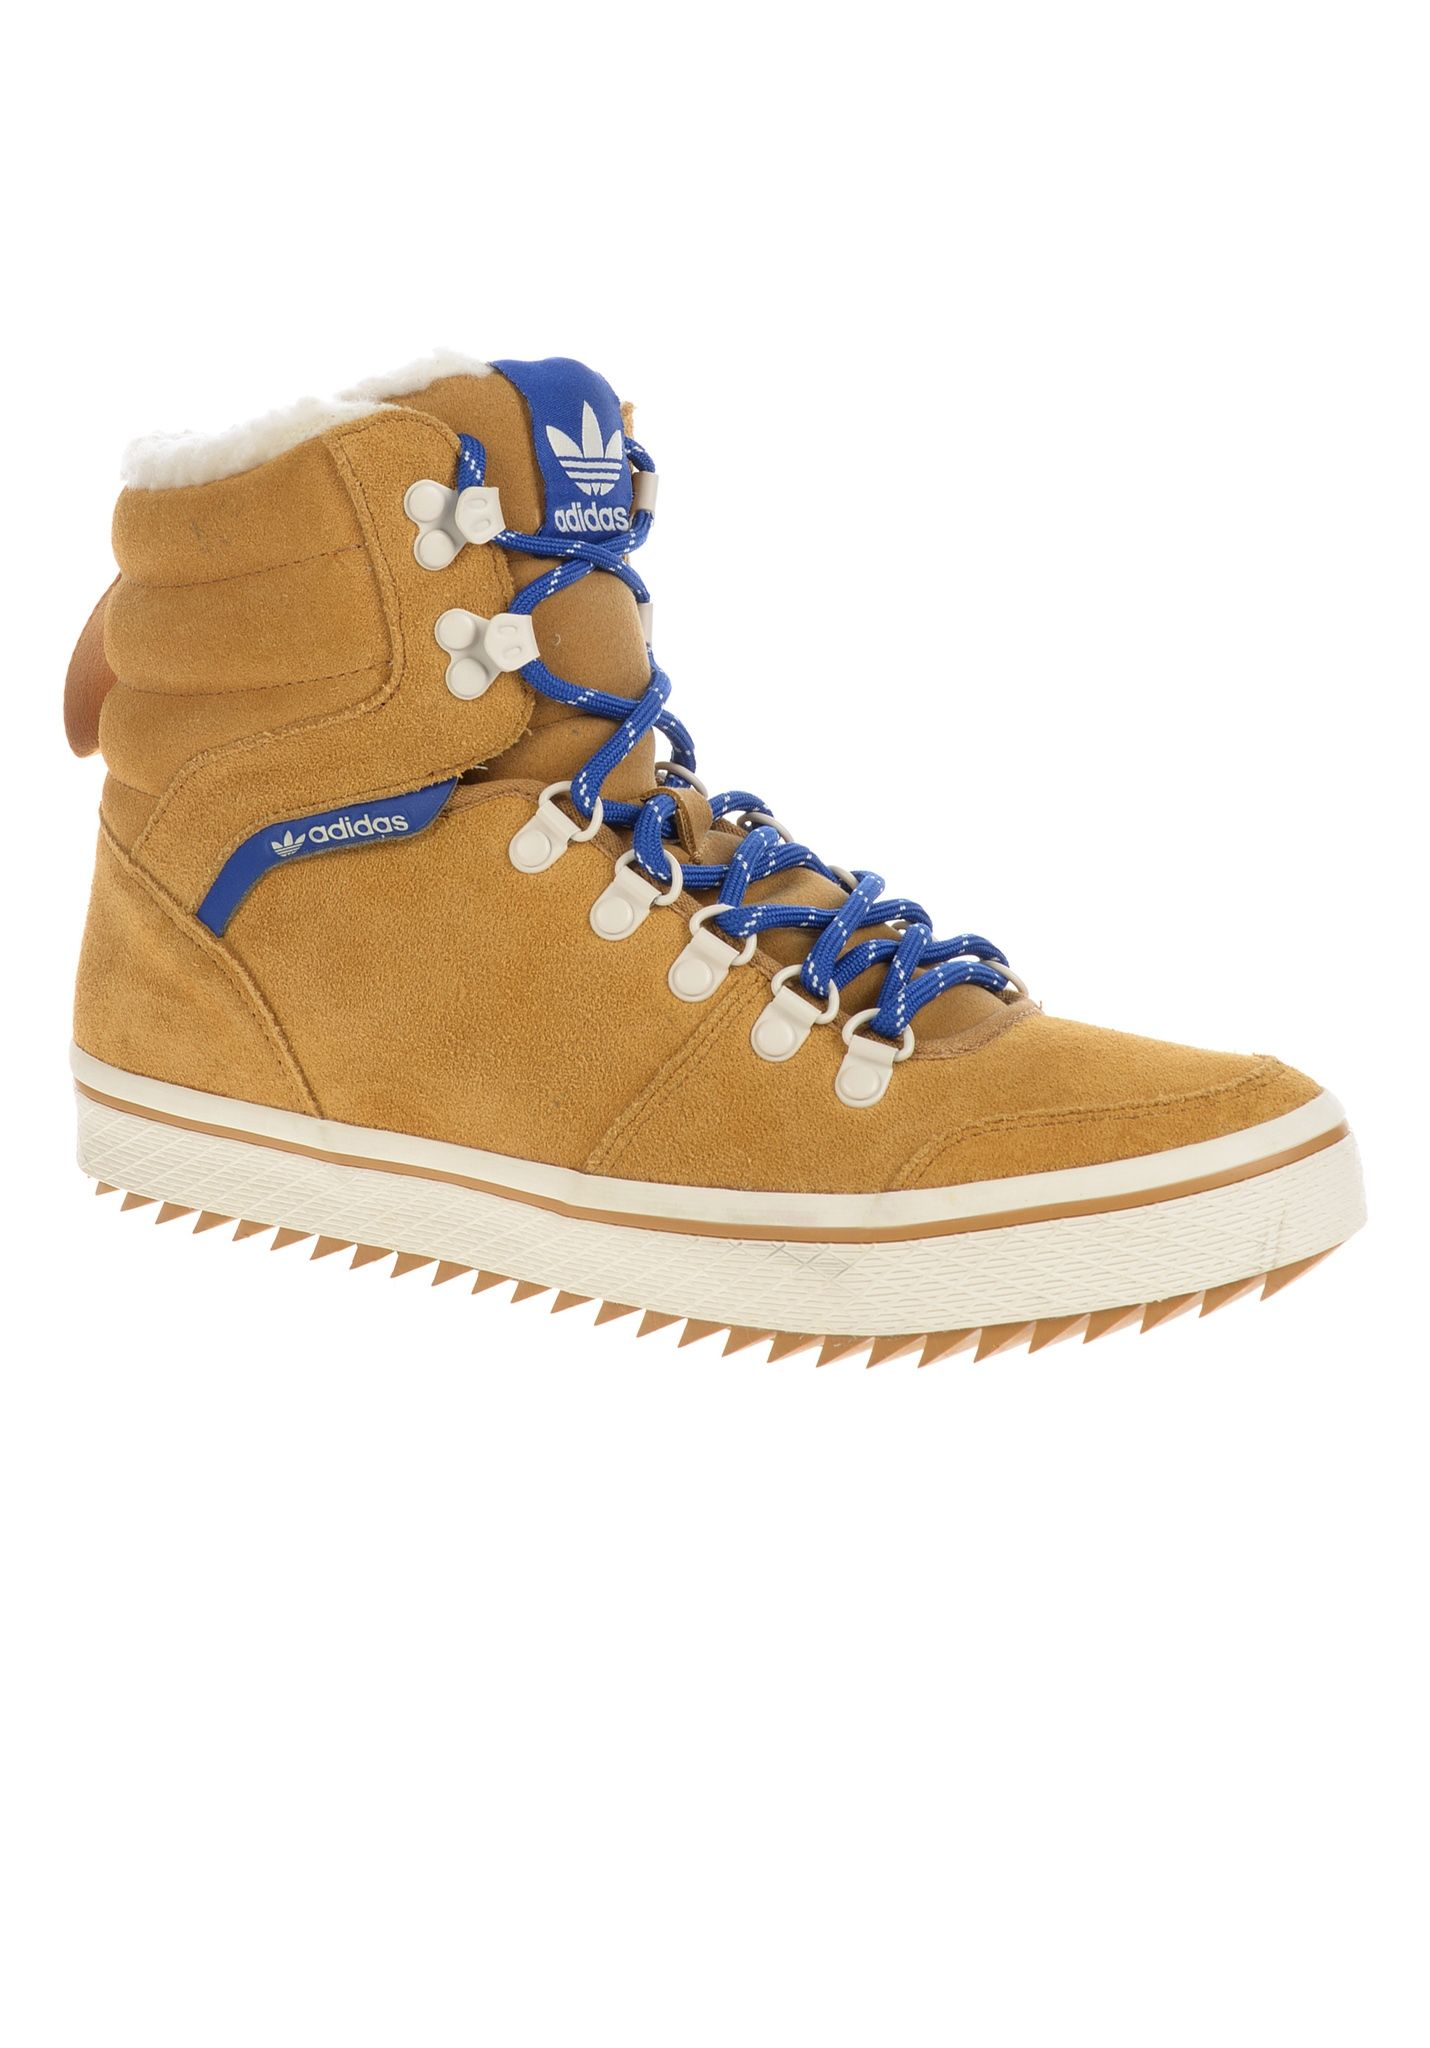 reputable site 3d40f 38776 adidas Honey Hill W - Botines para Mujeres - Marrón - Planet Sports